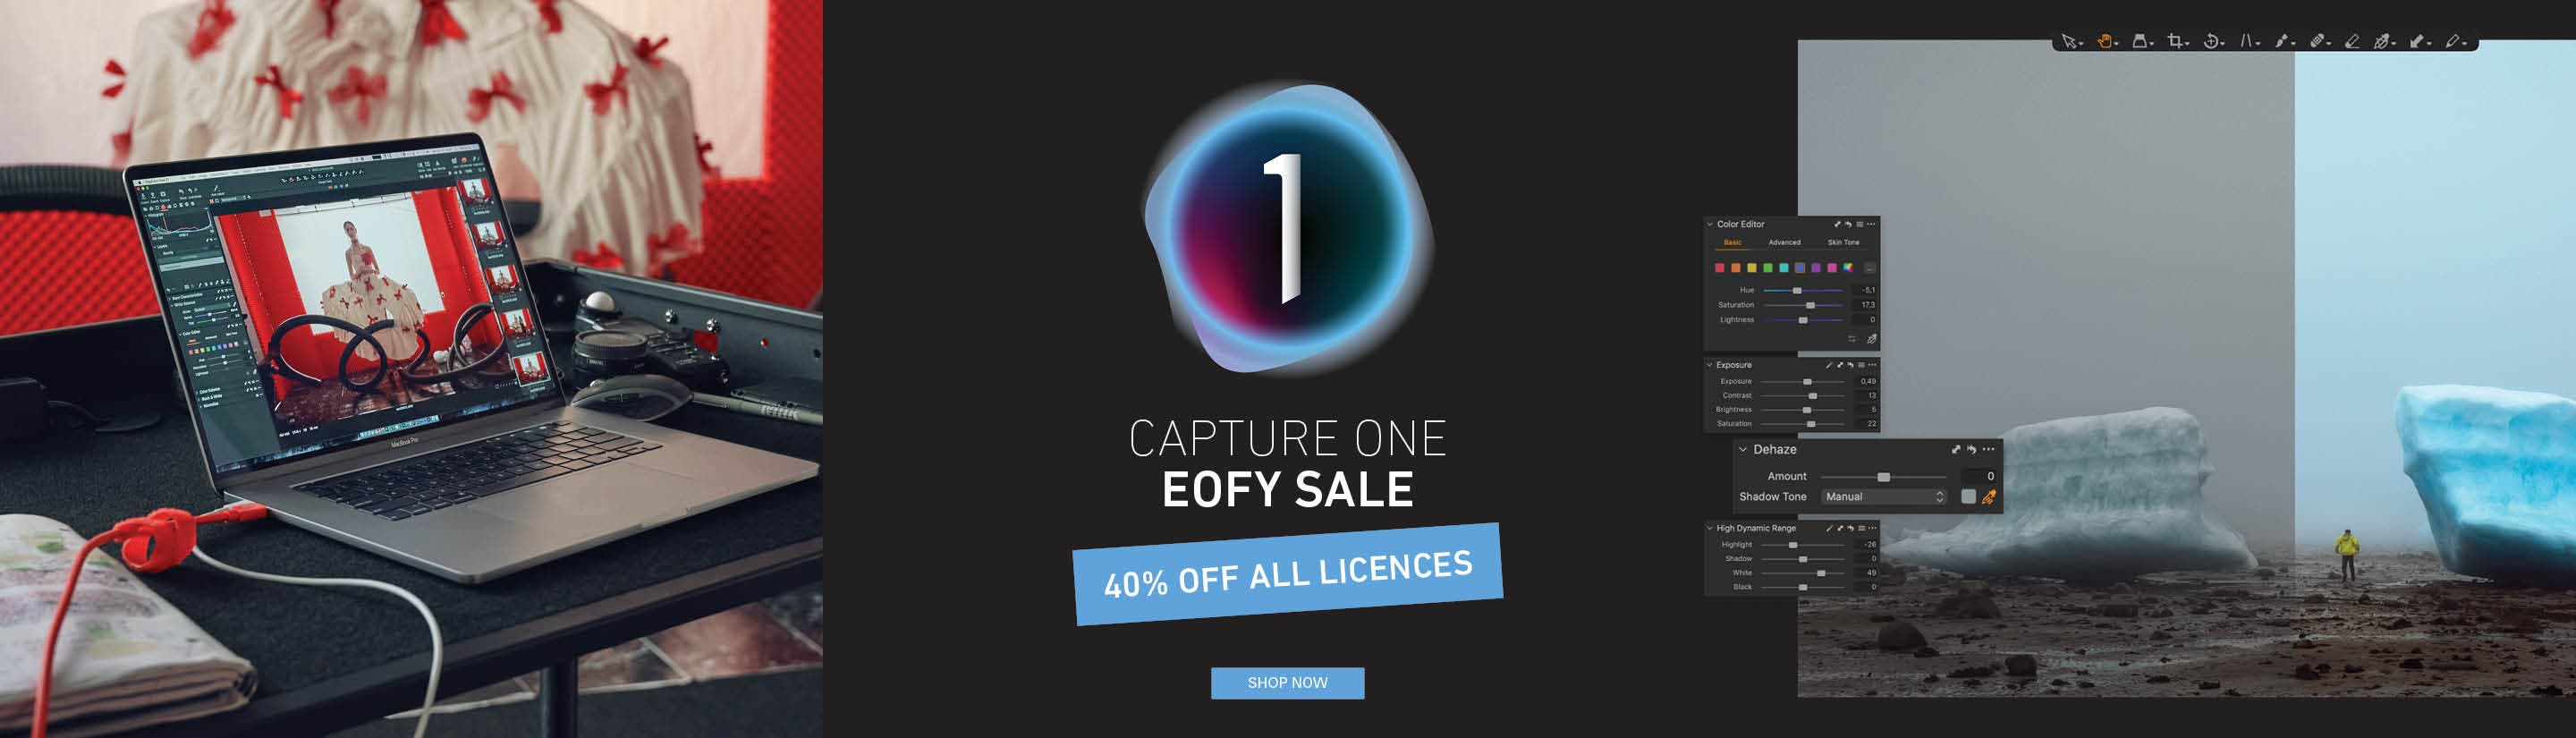 Capture One 40% Off EOFYs